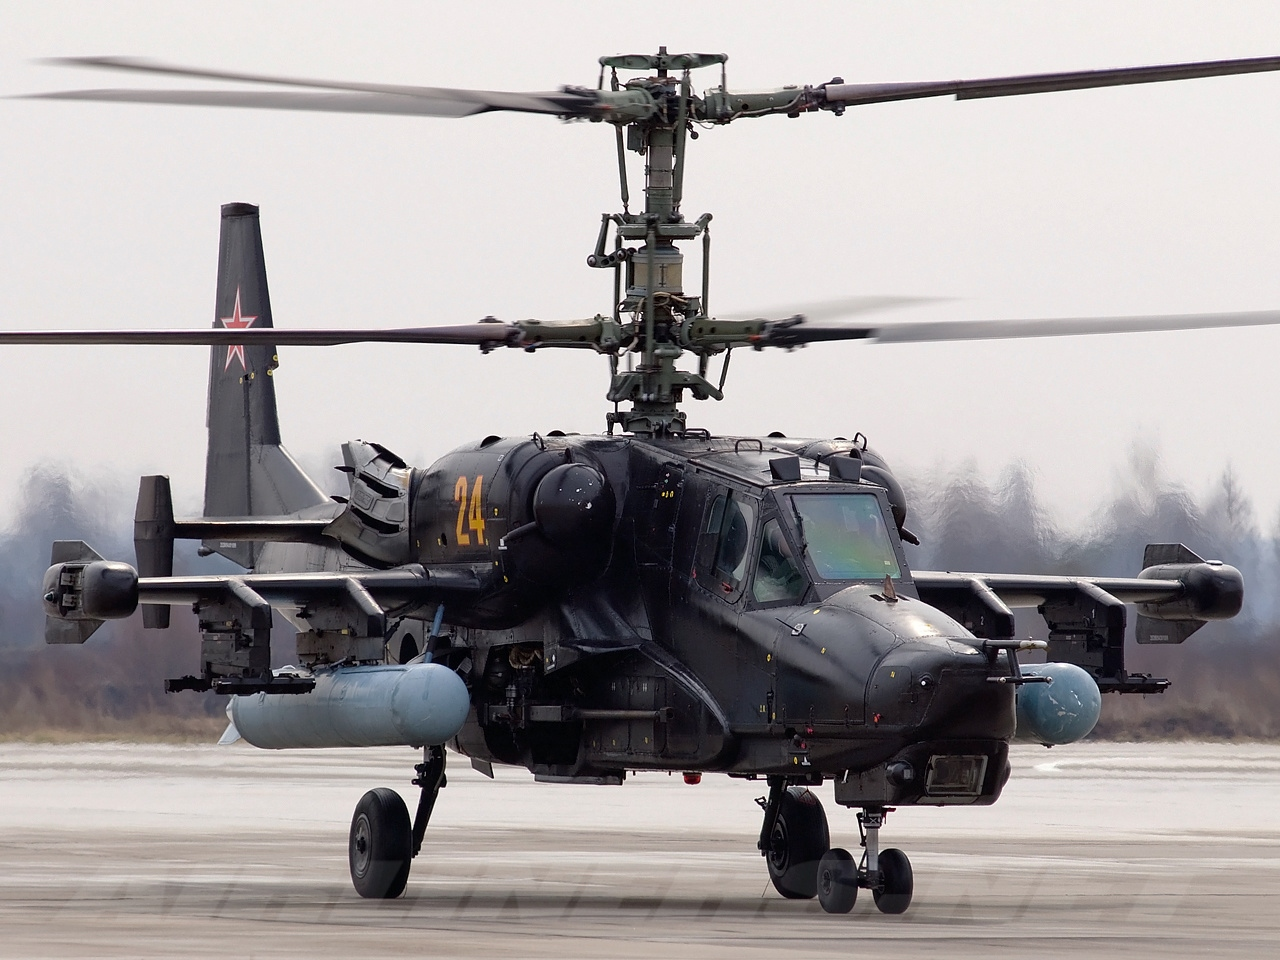 File:Kamov Ka-50, Russia - Air Force AN1776402.jpg - Wikimedia Commons